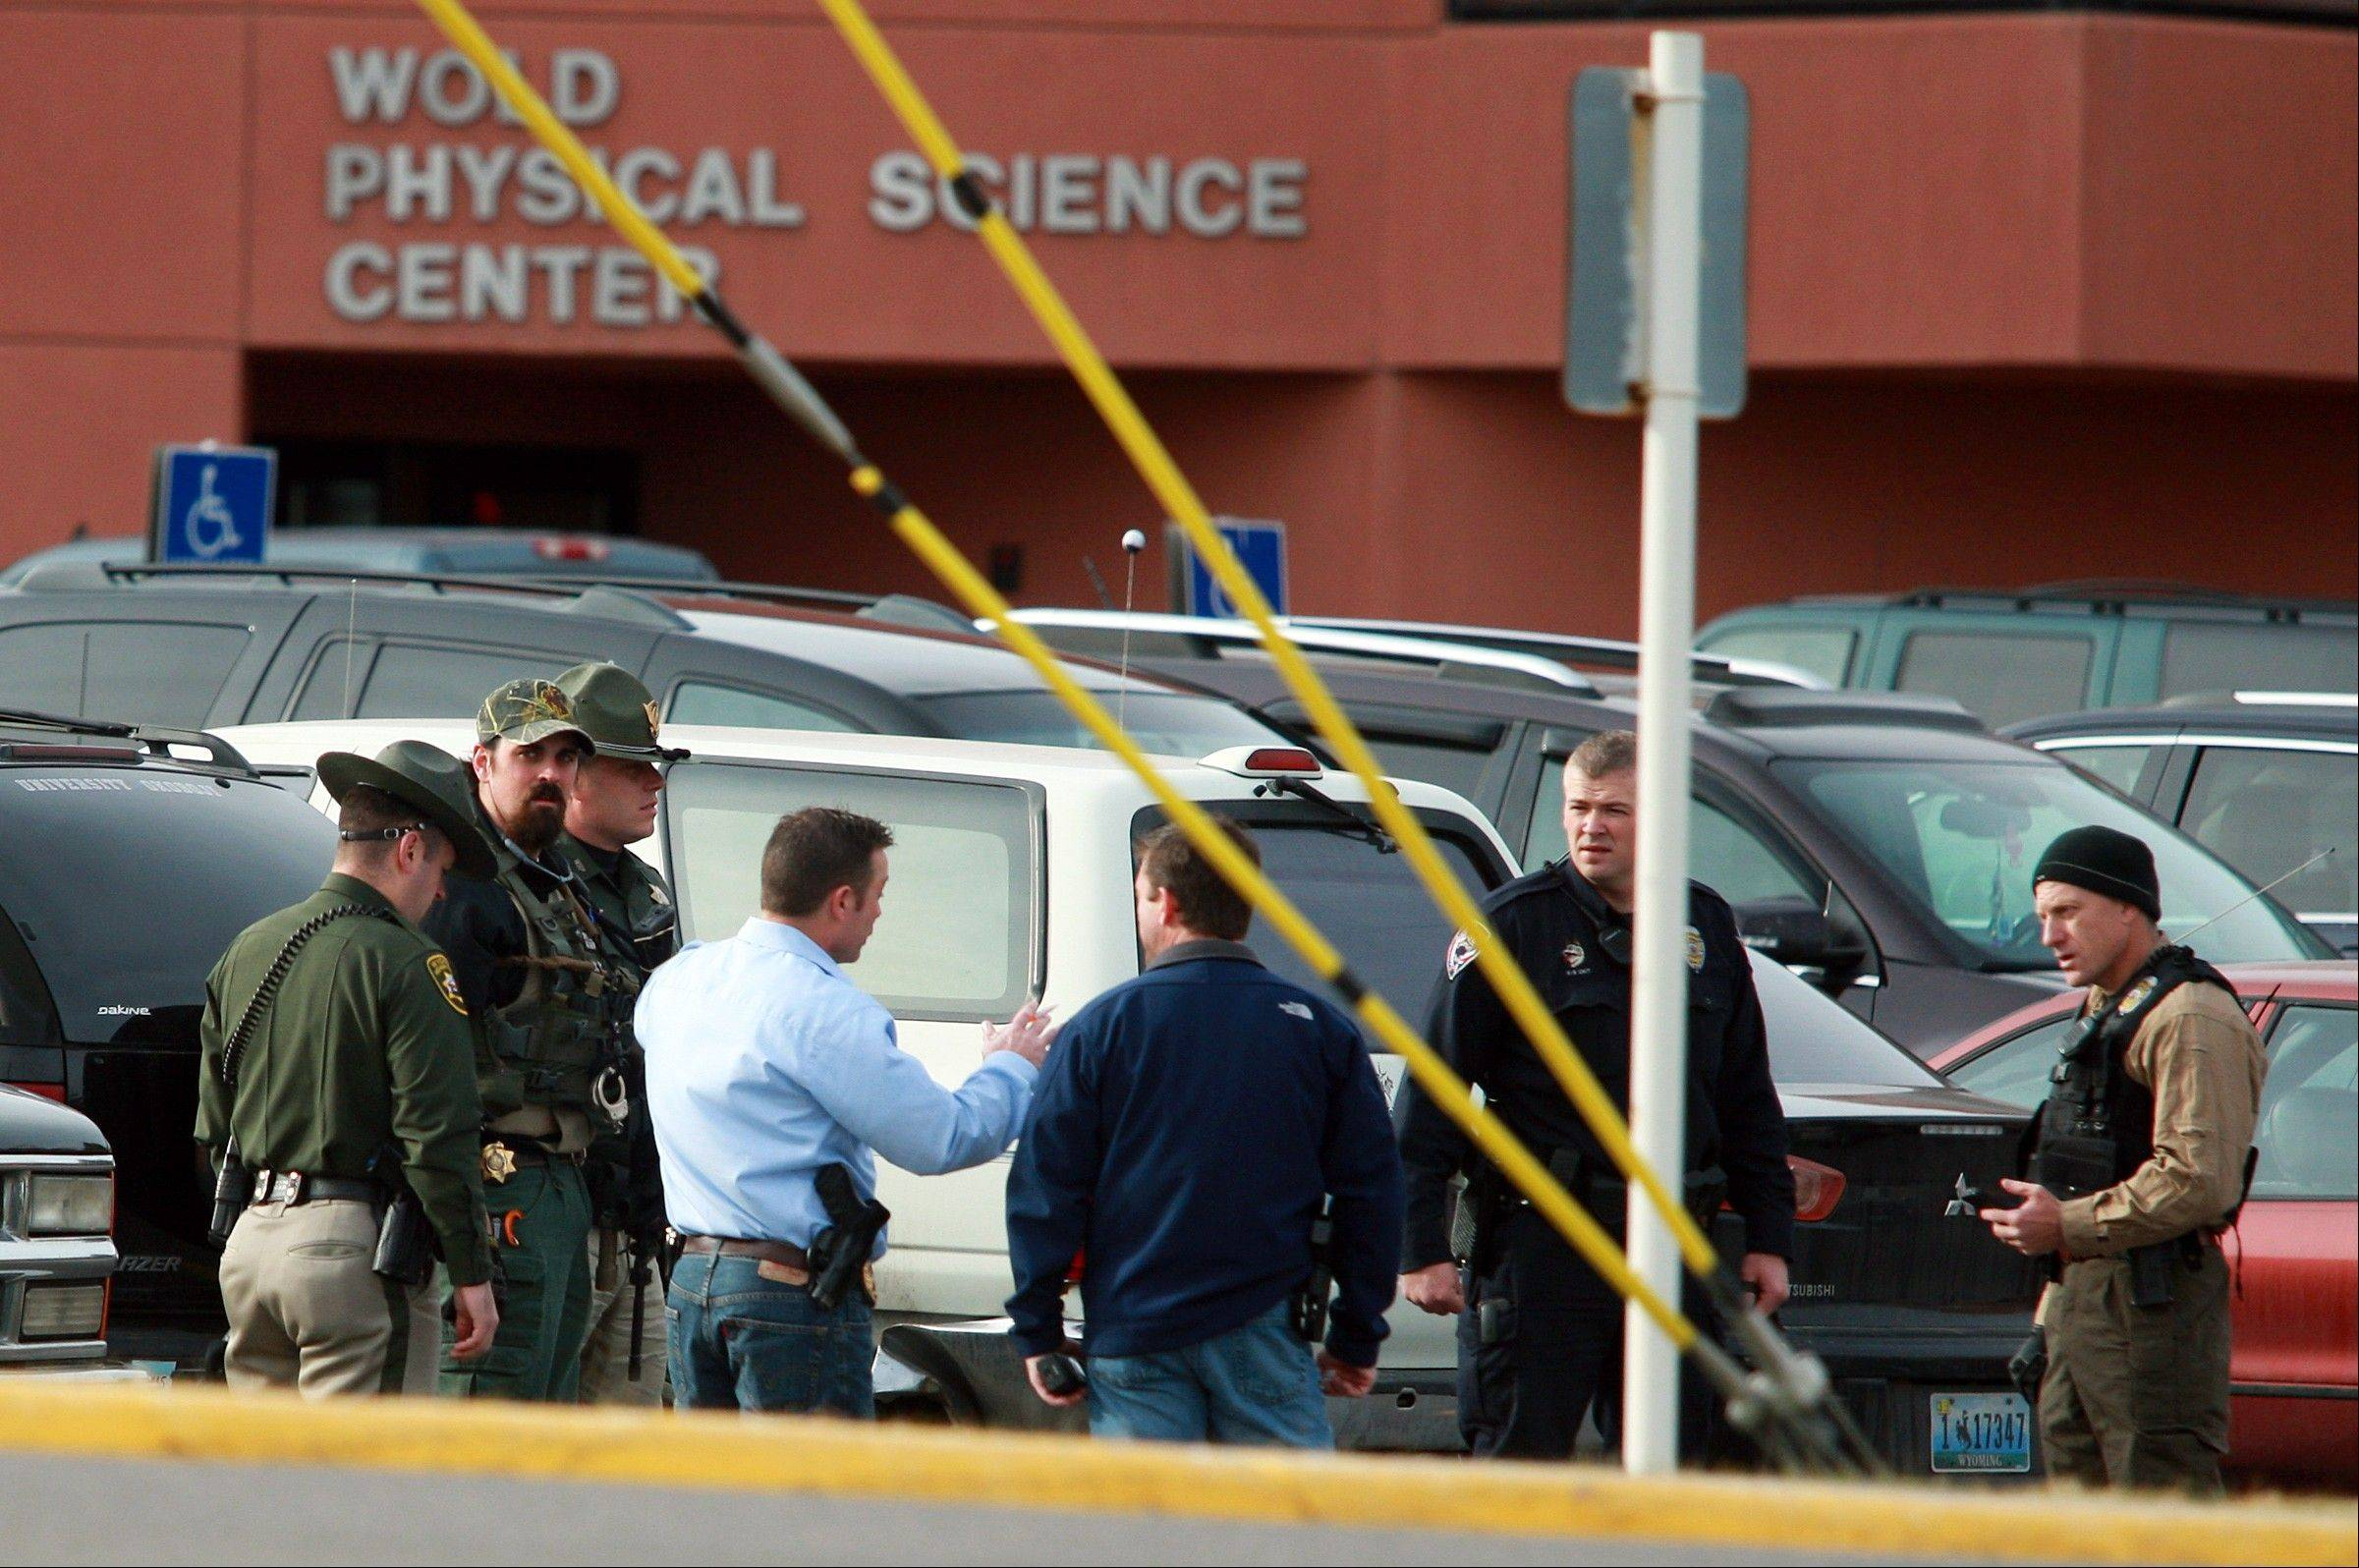 Associated PressLaw enforcement officers from various agencies prepare to sweep the Wold Physical Science Center Friday after a reported homicide at Casper College in Casper, Wyo.